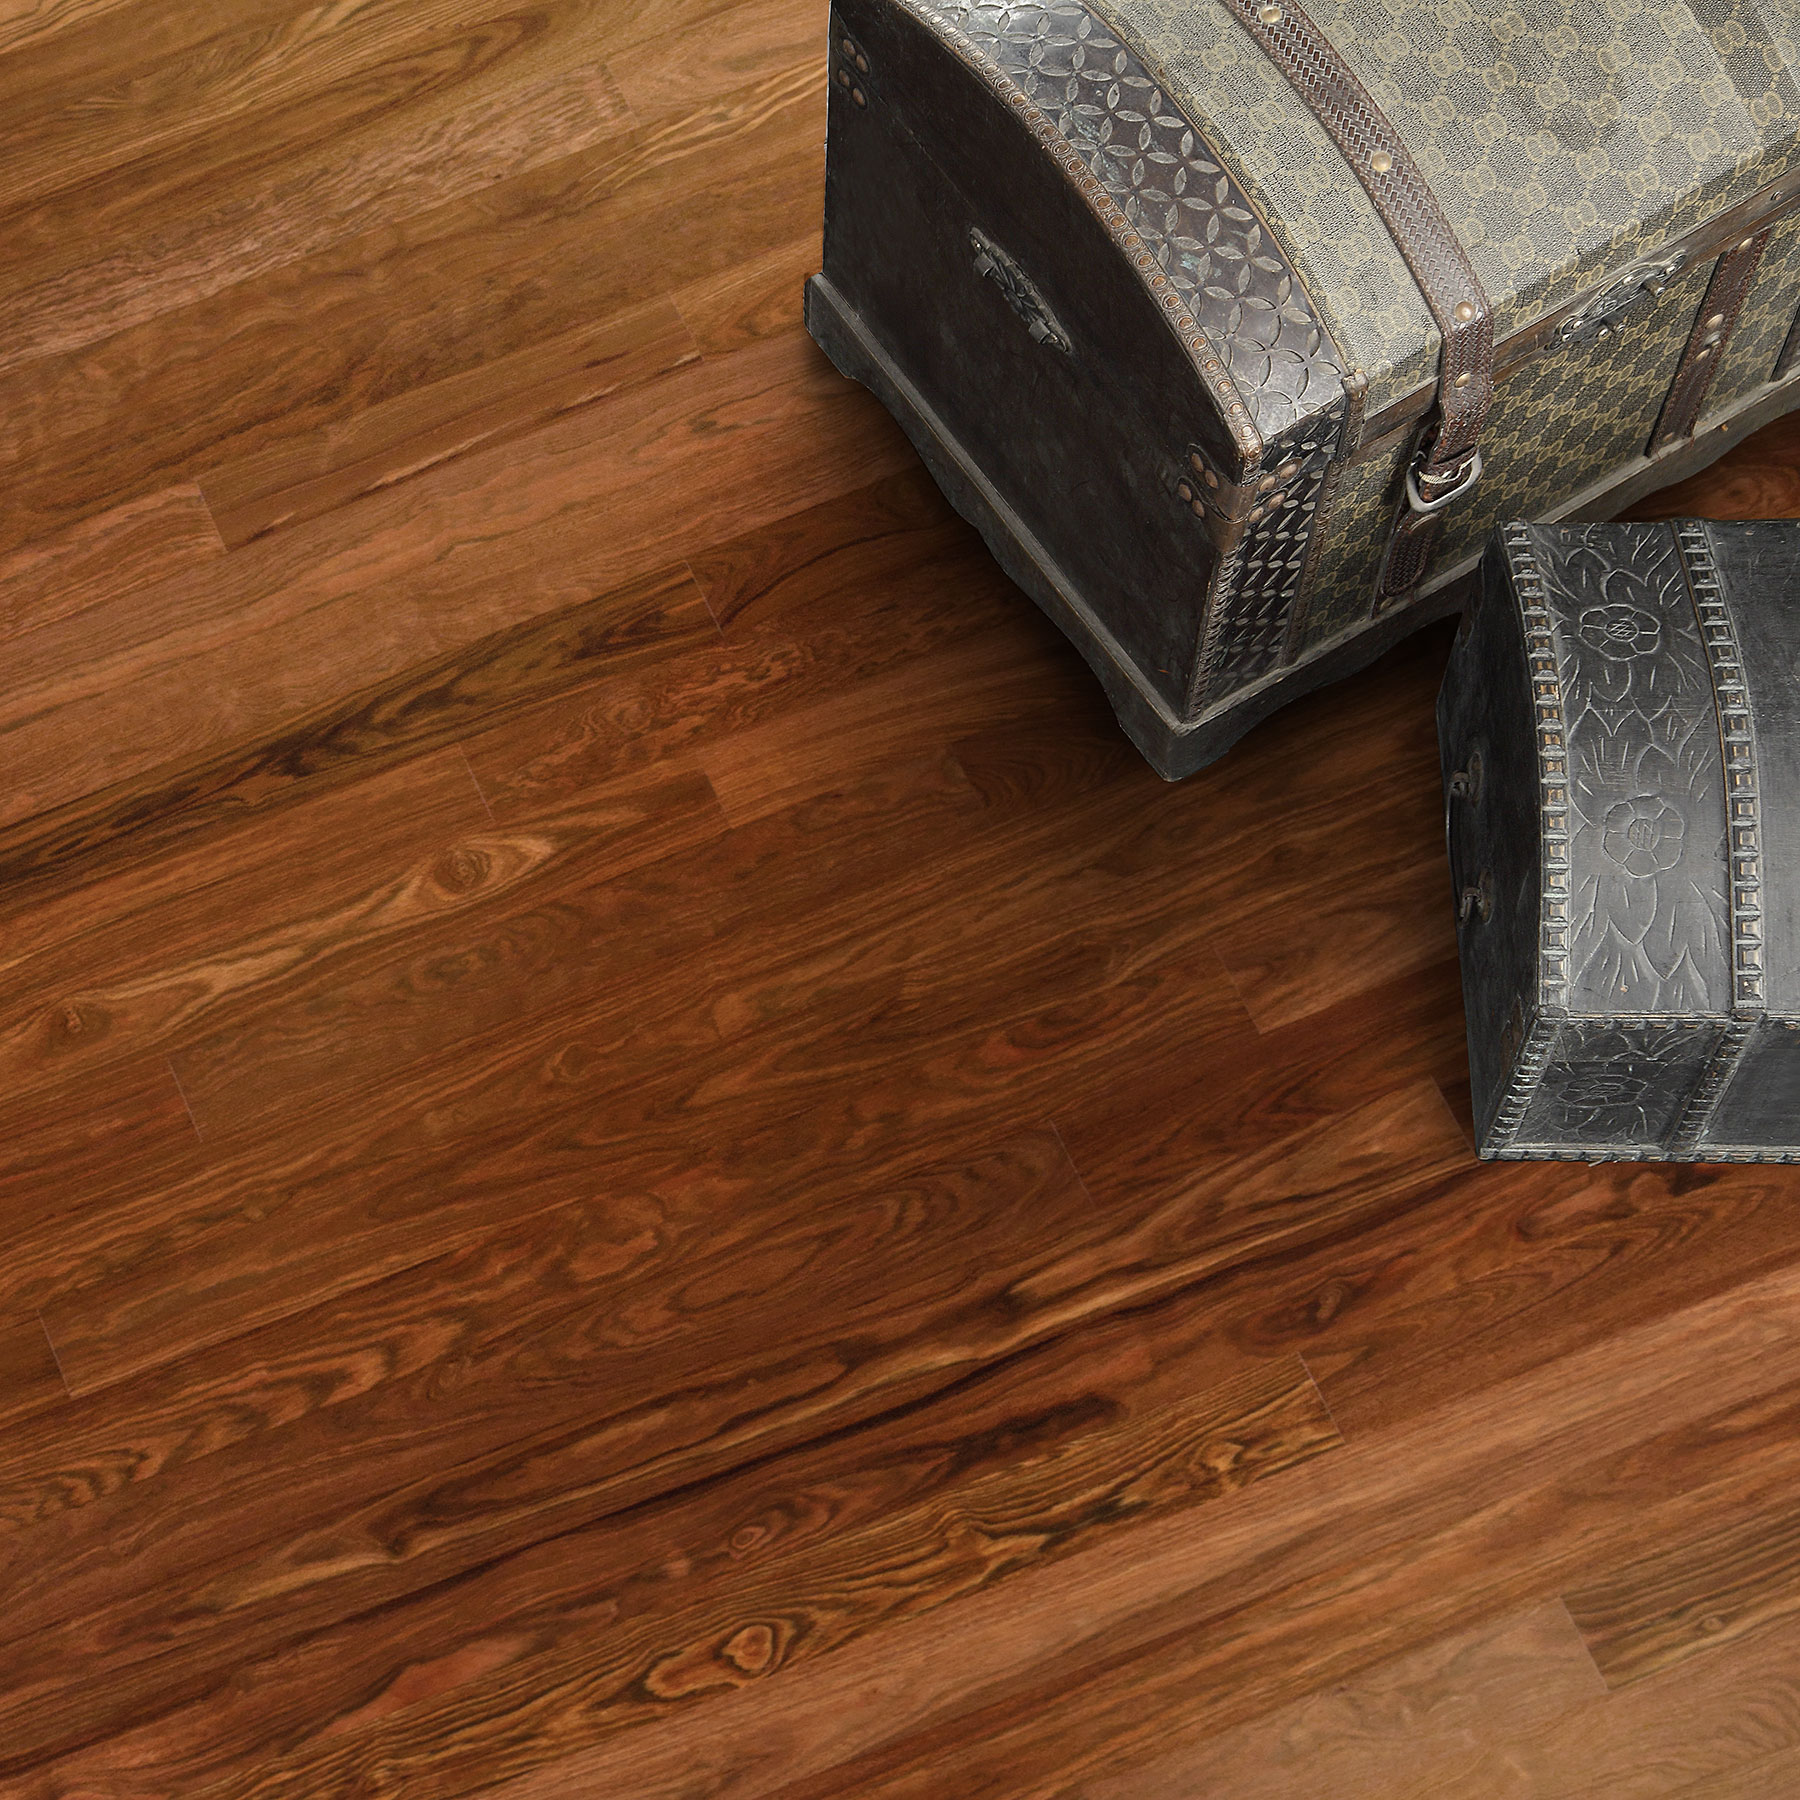 Tesoro Woods - Great Southern Woods Collection, Caribbean Rosewood Natural